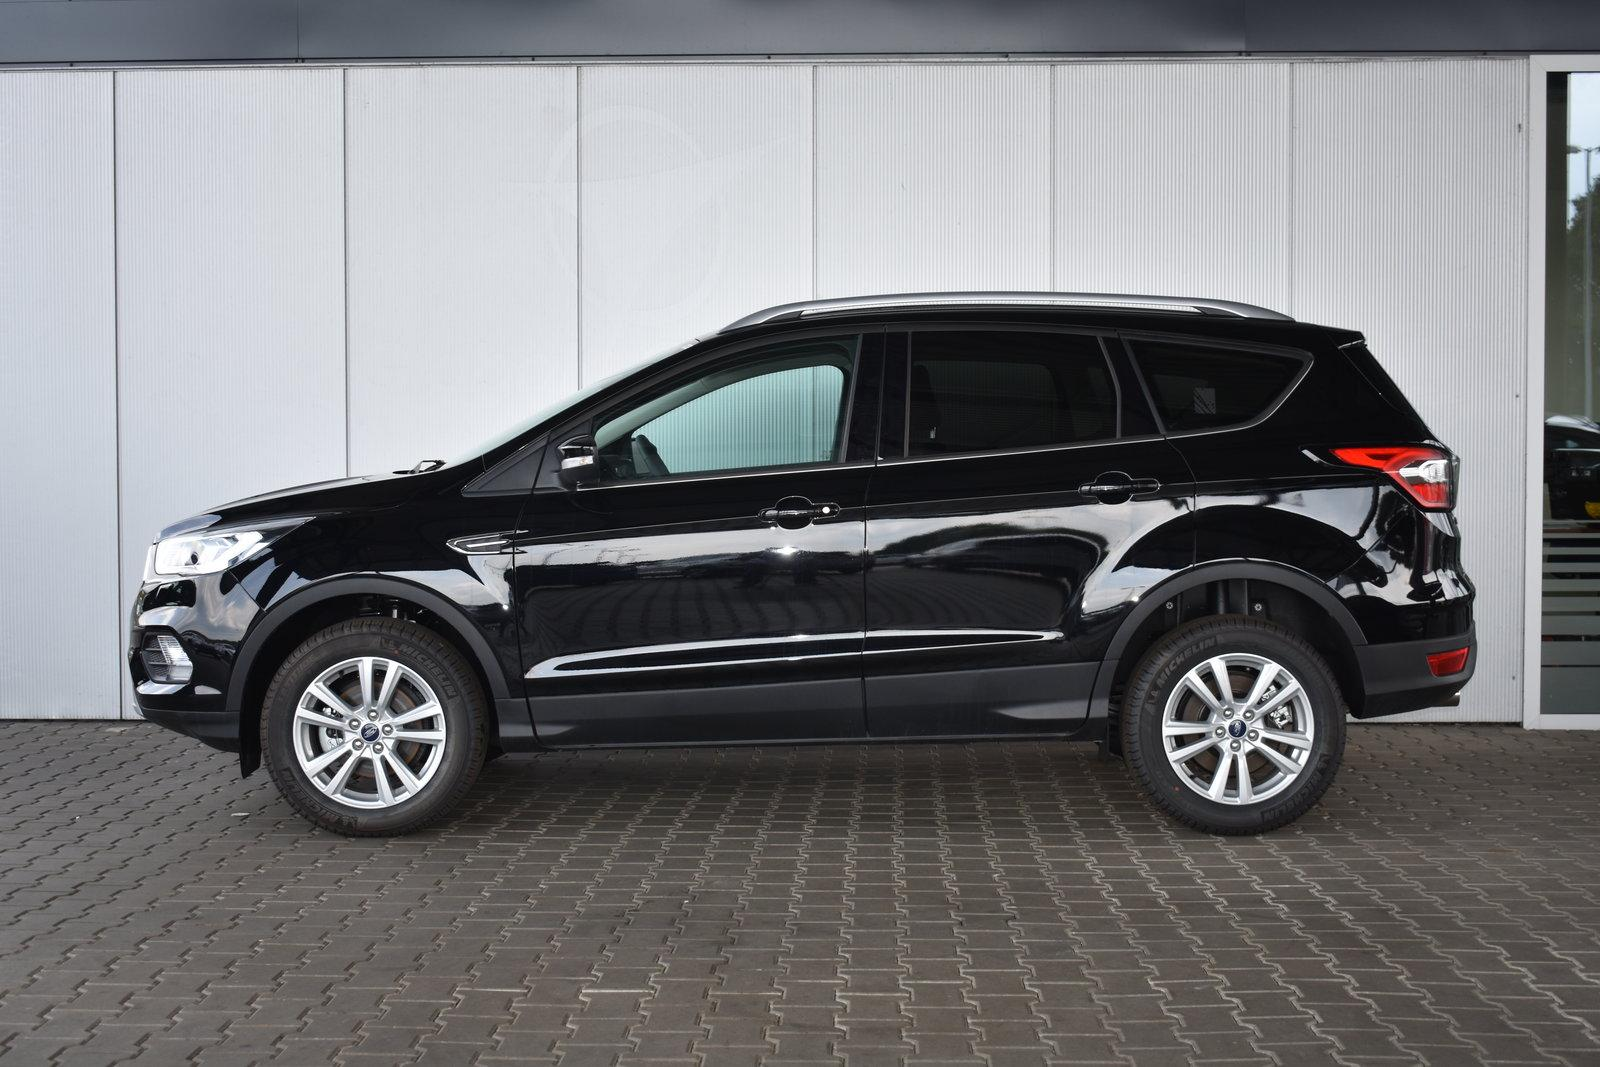 Ford Kuga 1,5 Eco Boost 120 PS Business